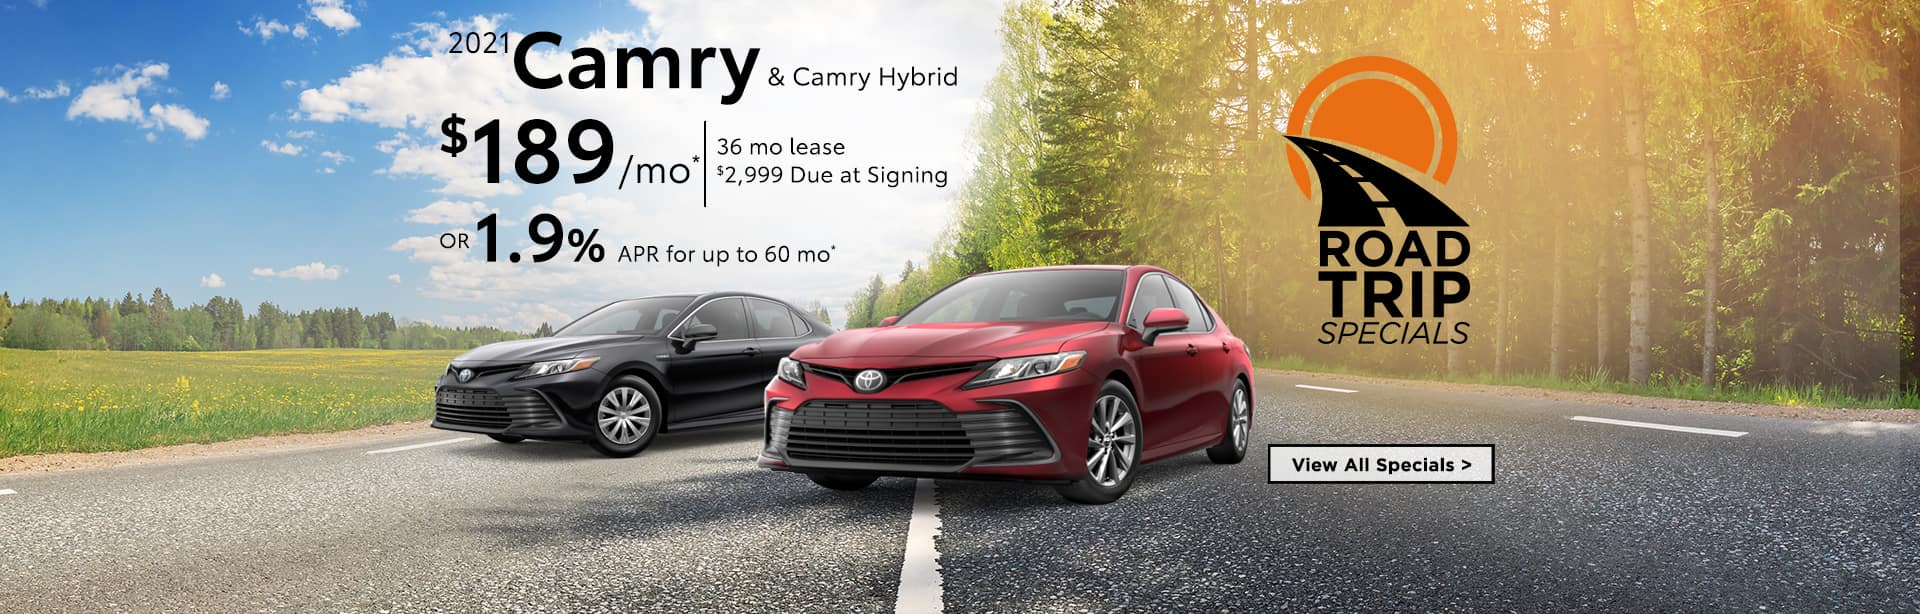 May21-HT-Banner-Camry-Hybrid